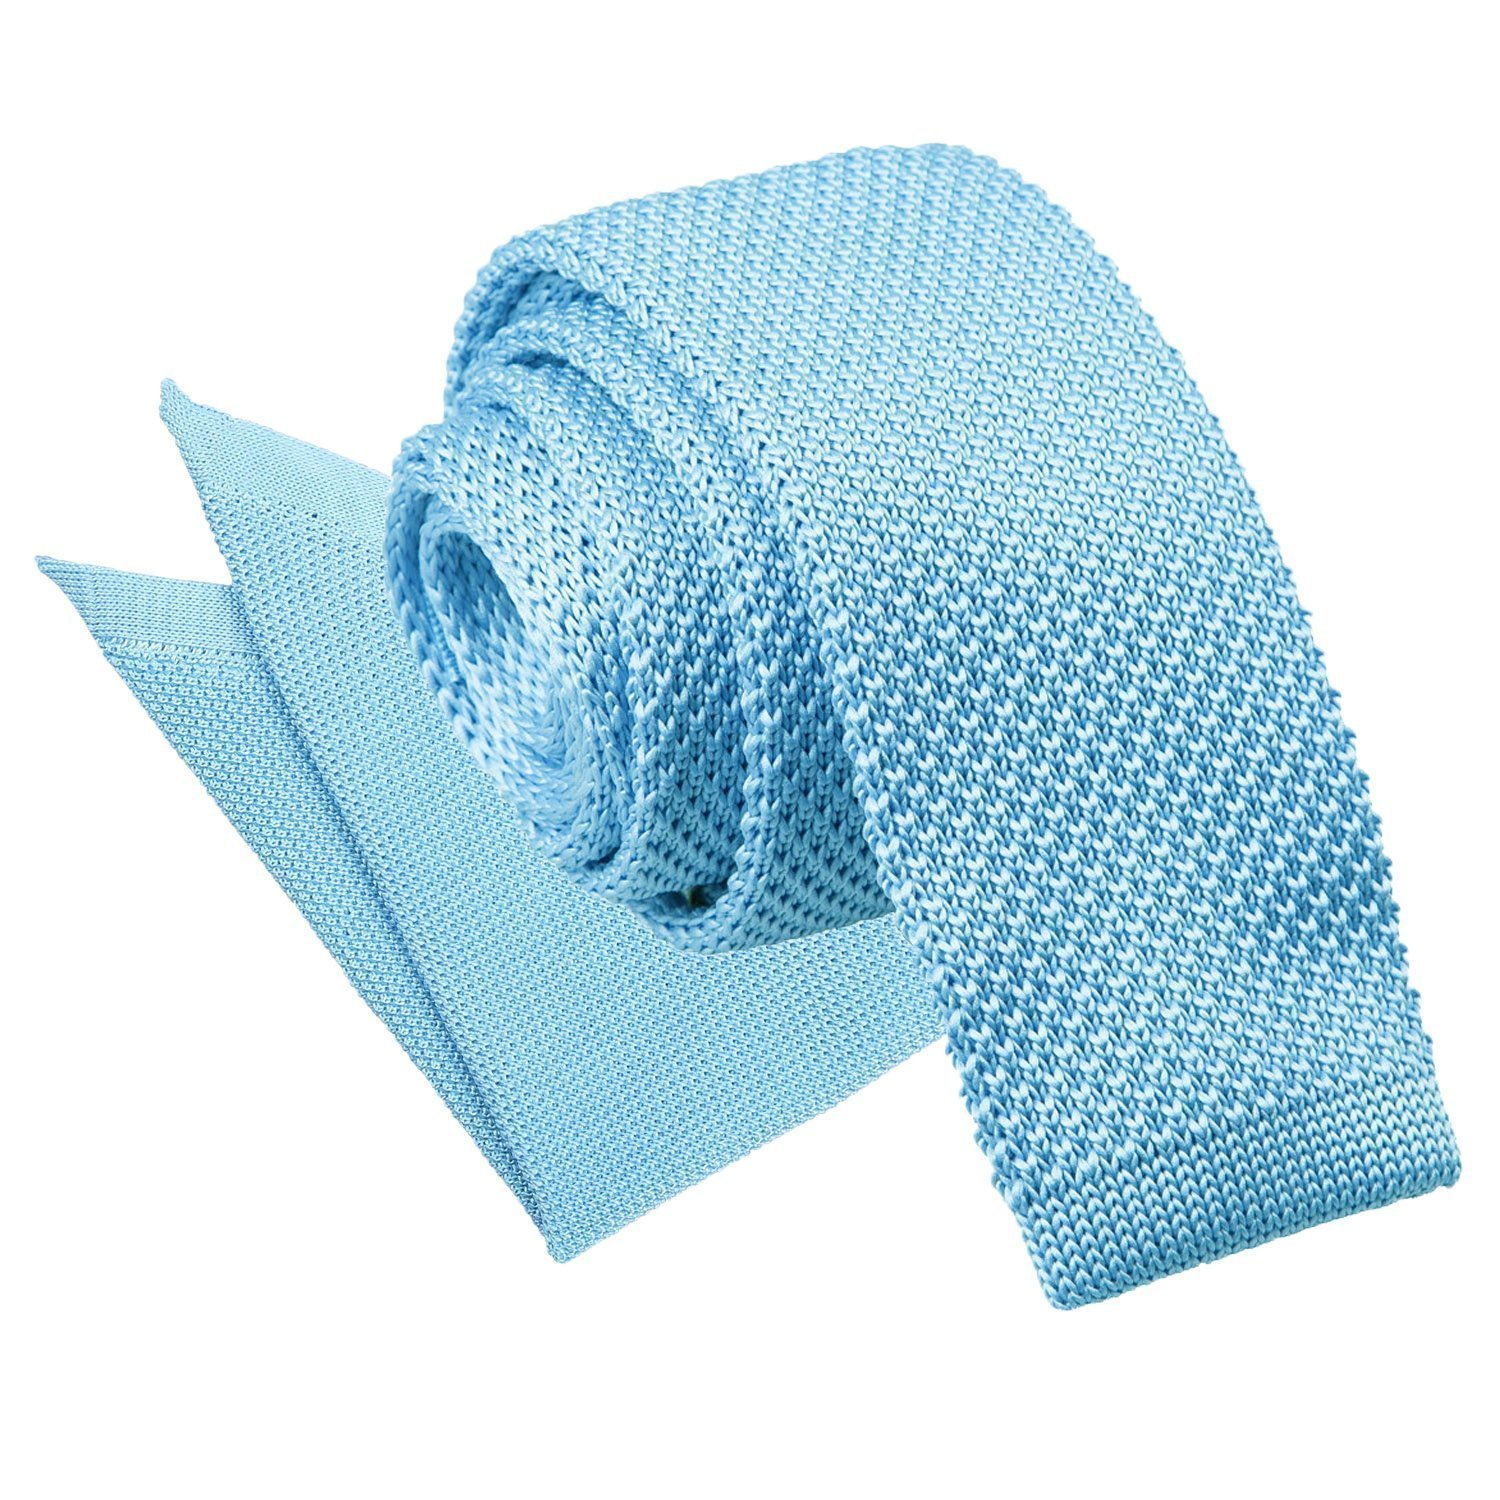 e5637d7b3f1a DQT Knit Knitted Plain Baby Blue Casual Men's Skinny Tie ...